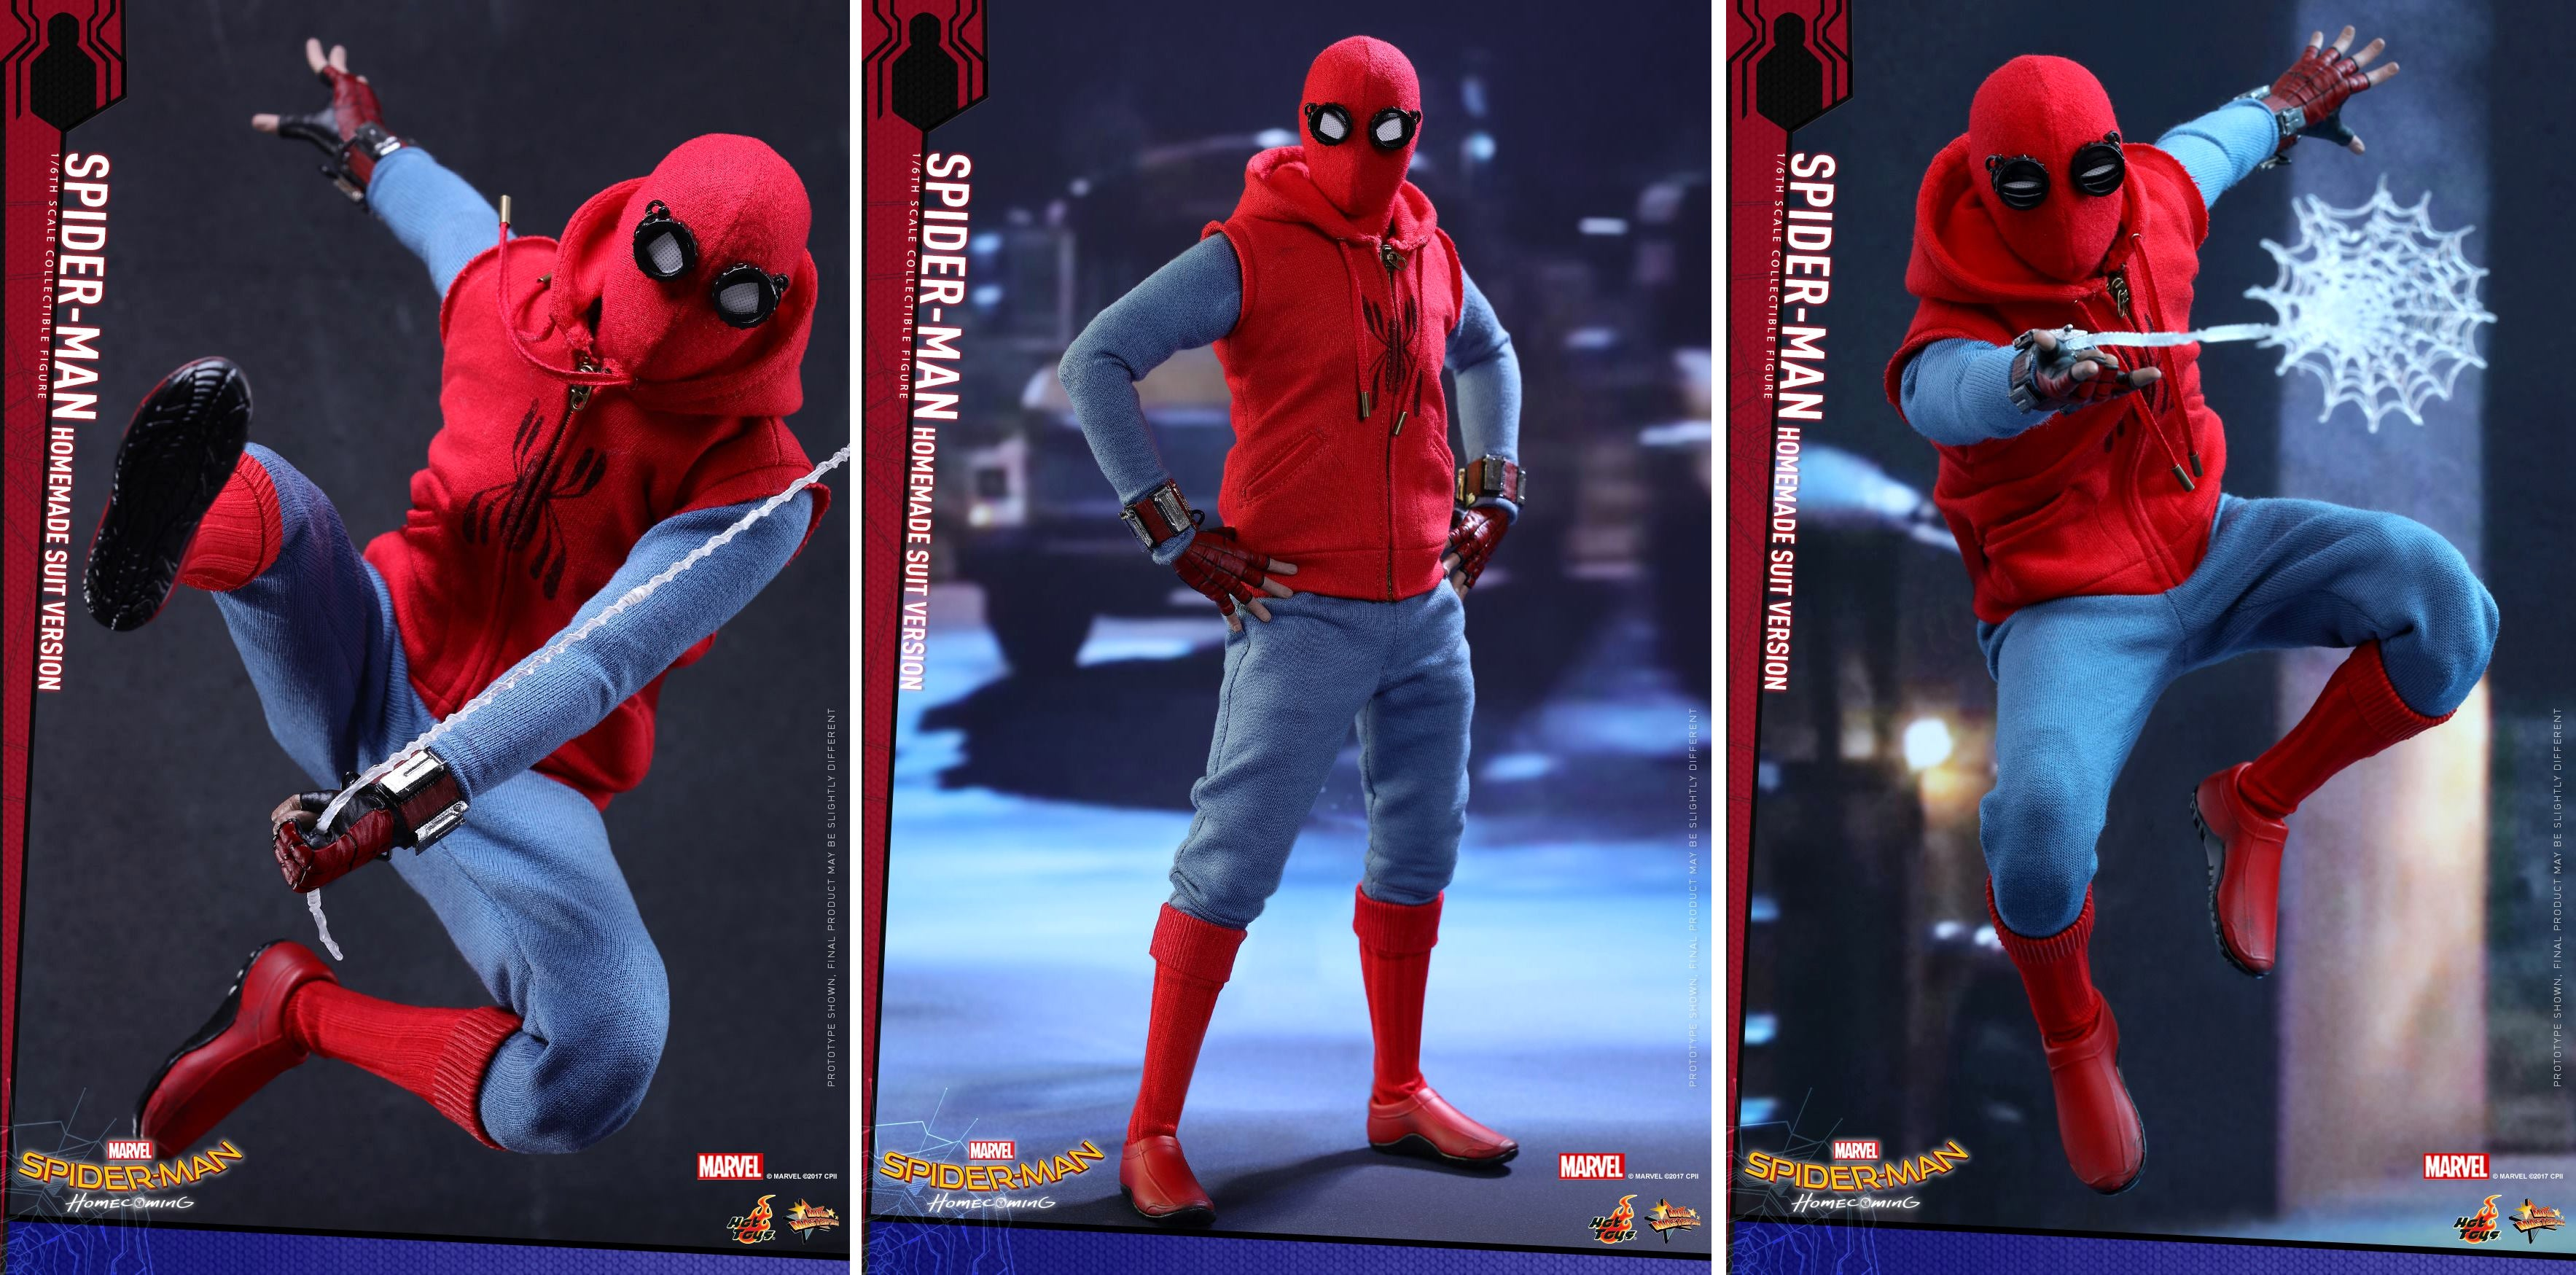 Hot Toys Spectacular Homemade Spider Man Homecoming Figure And